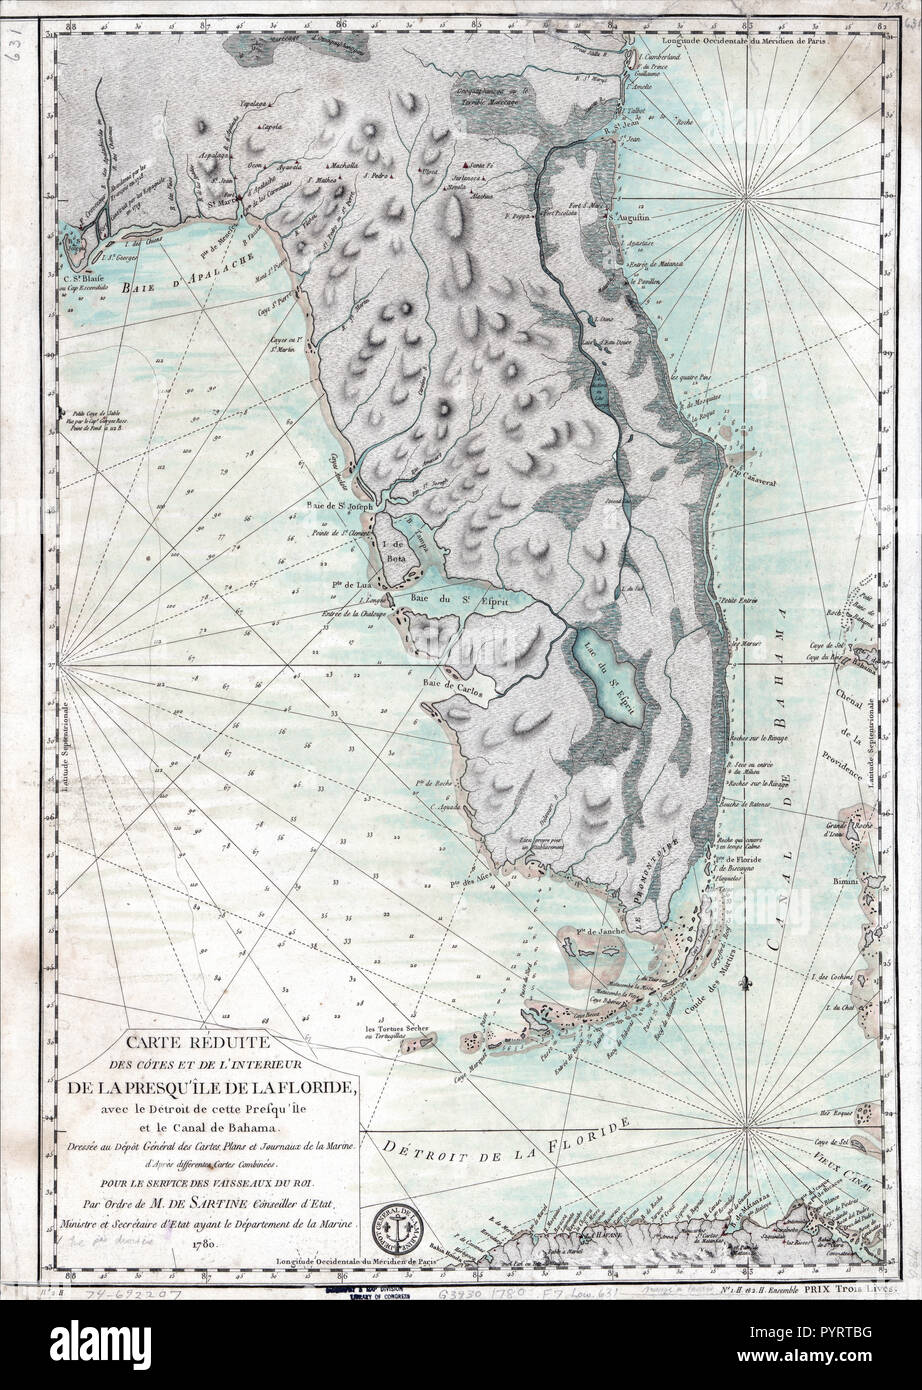 Vintage Maps / Antique Maps - Florida Map ca. 1780 - Relief shown by ...